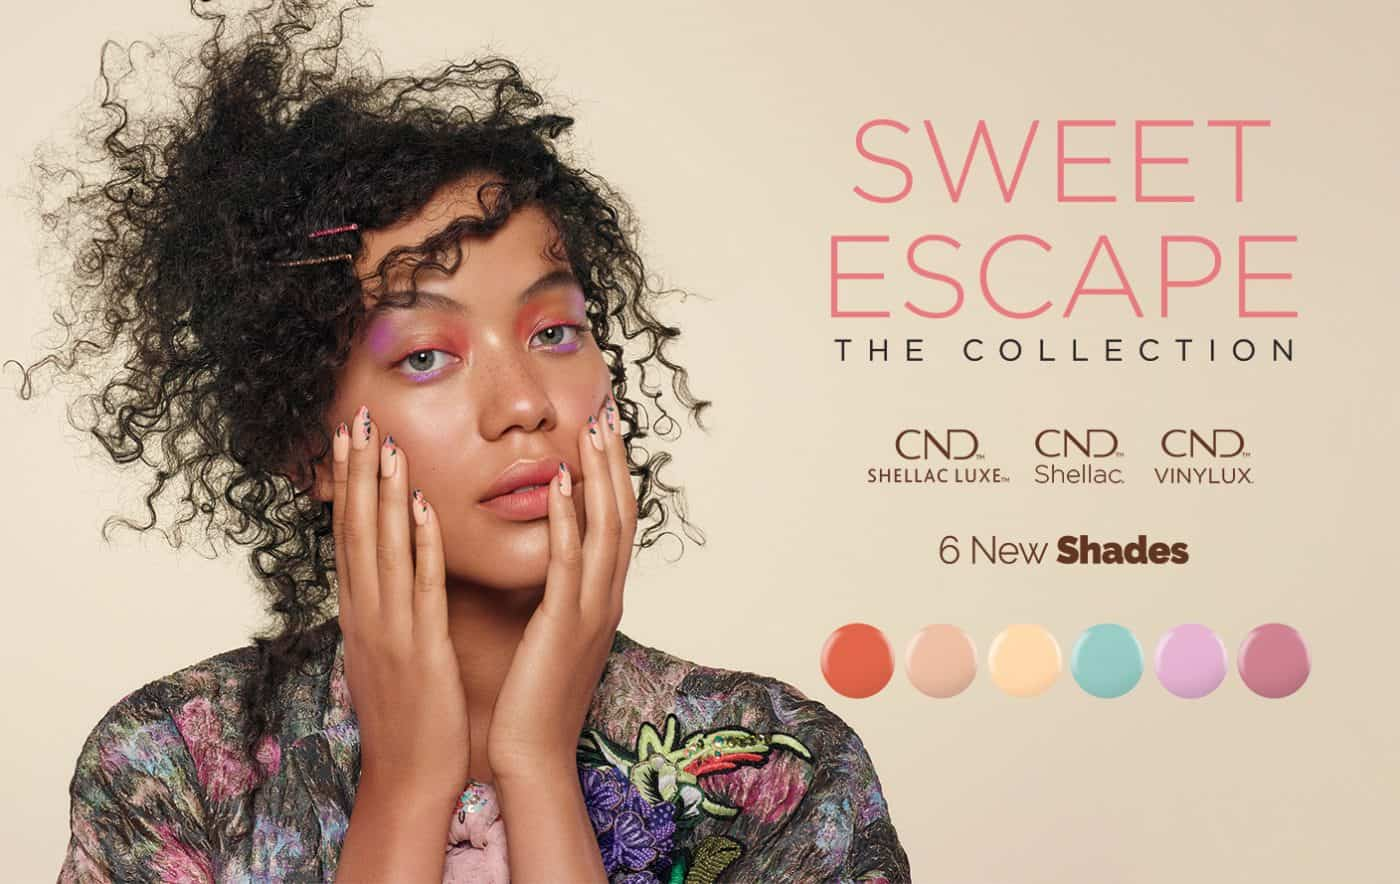 CND Sweet Escape: The Collection